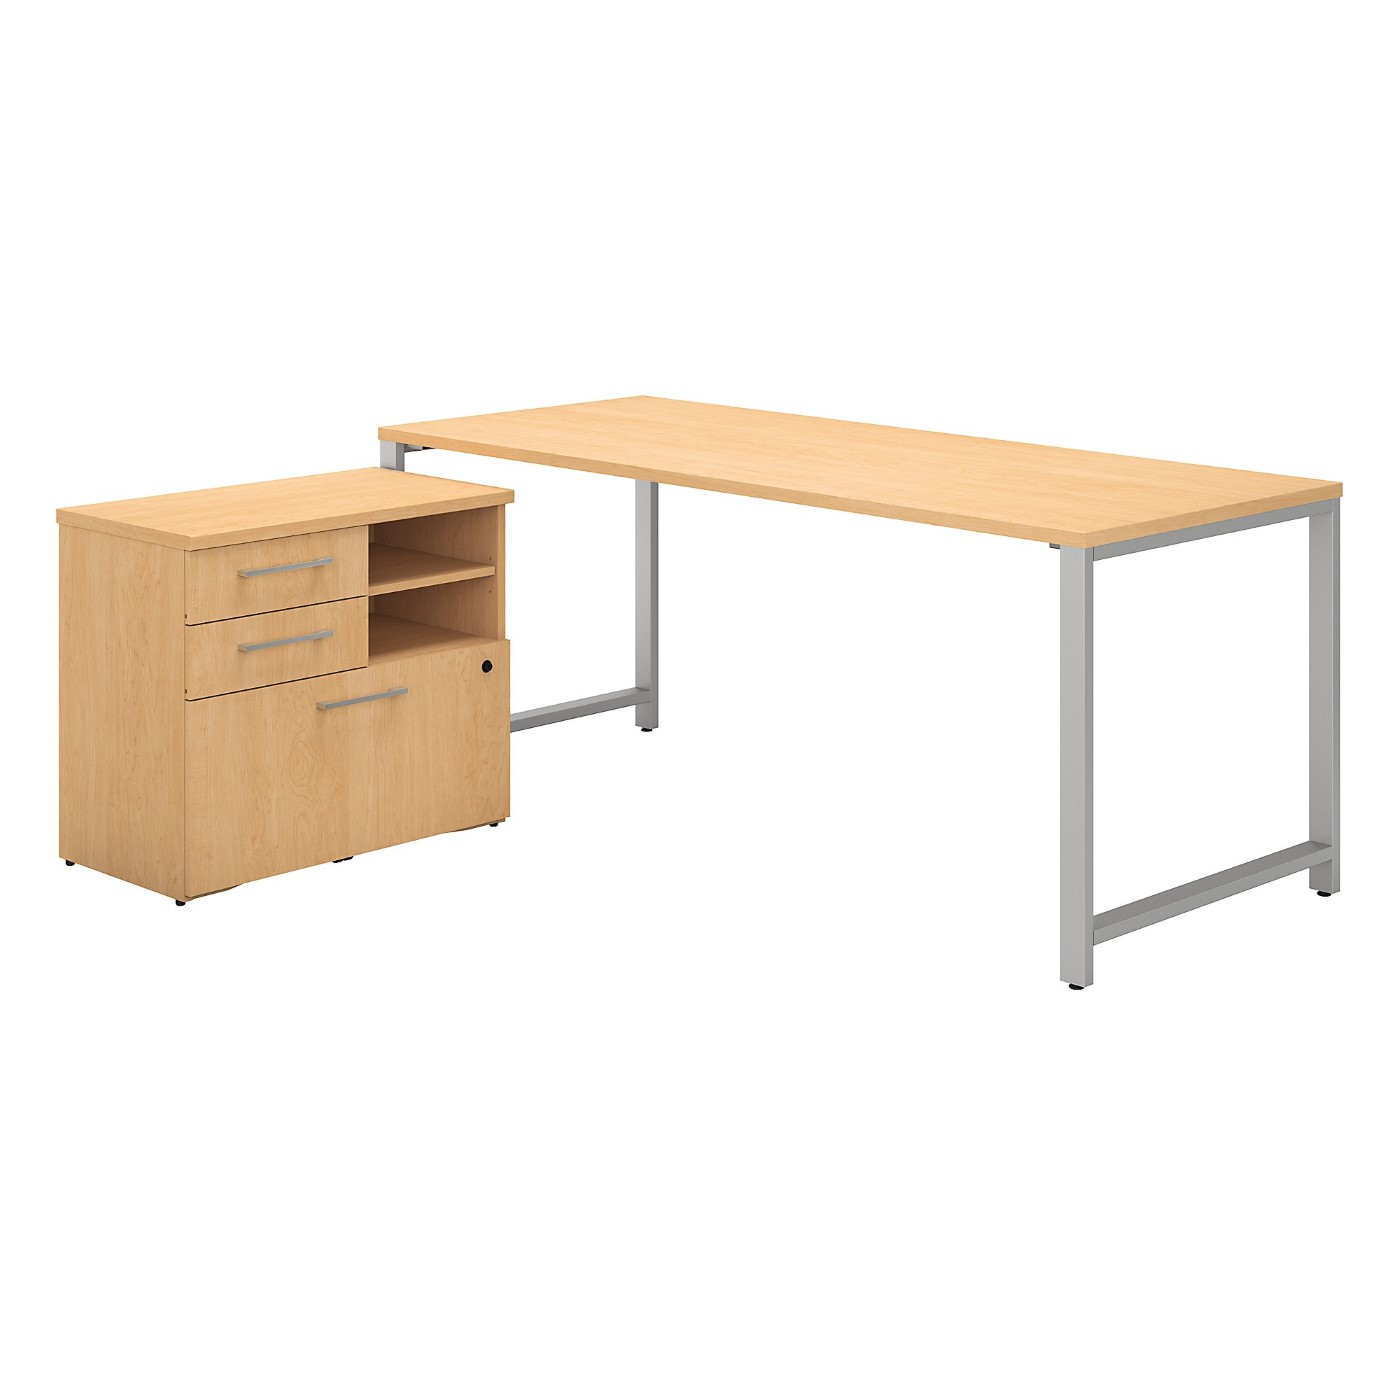 BUSH BUSINESS FURNITURE 400 SERIES 72W X 30D TABLE DESK WITH STORAGE. FREE SHIPPING